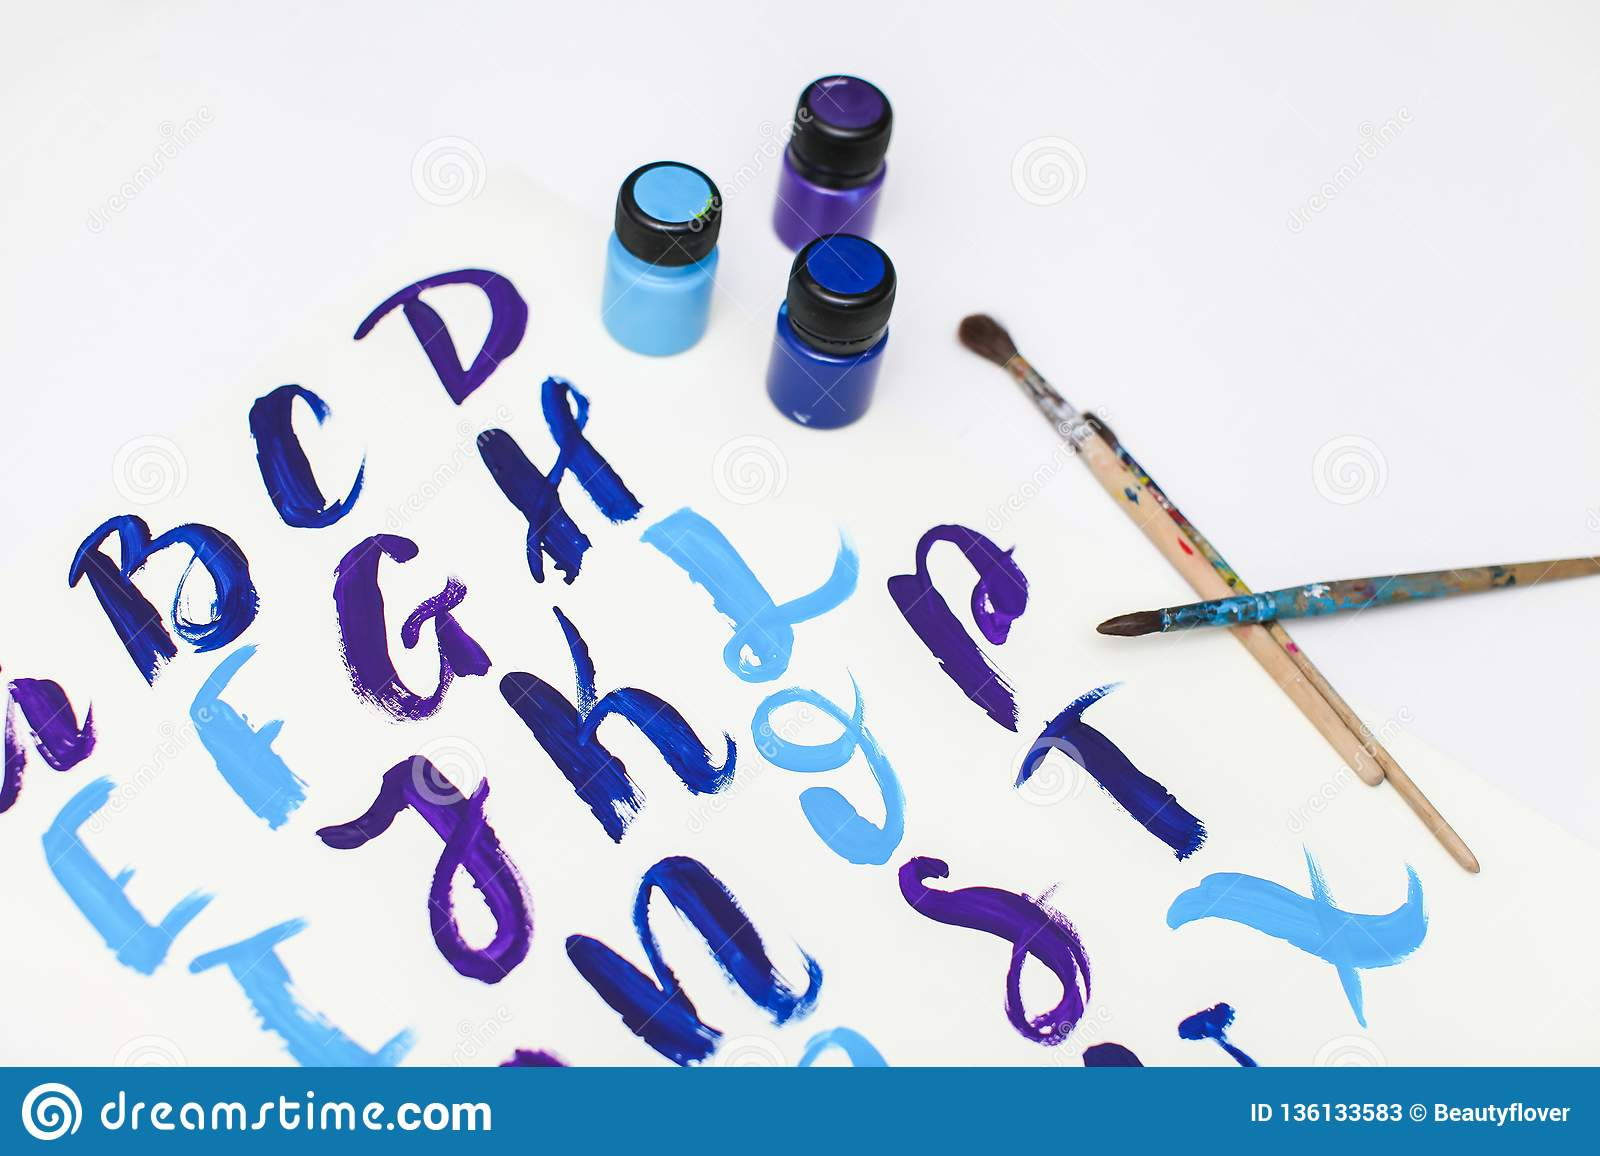 Calligraphy lettering alphabet drawn with dry brush. Letters of English ABC written with paint brush